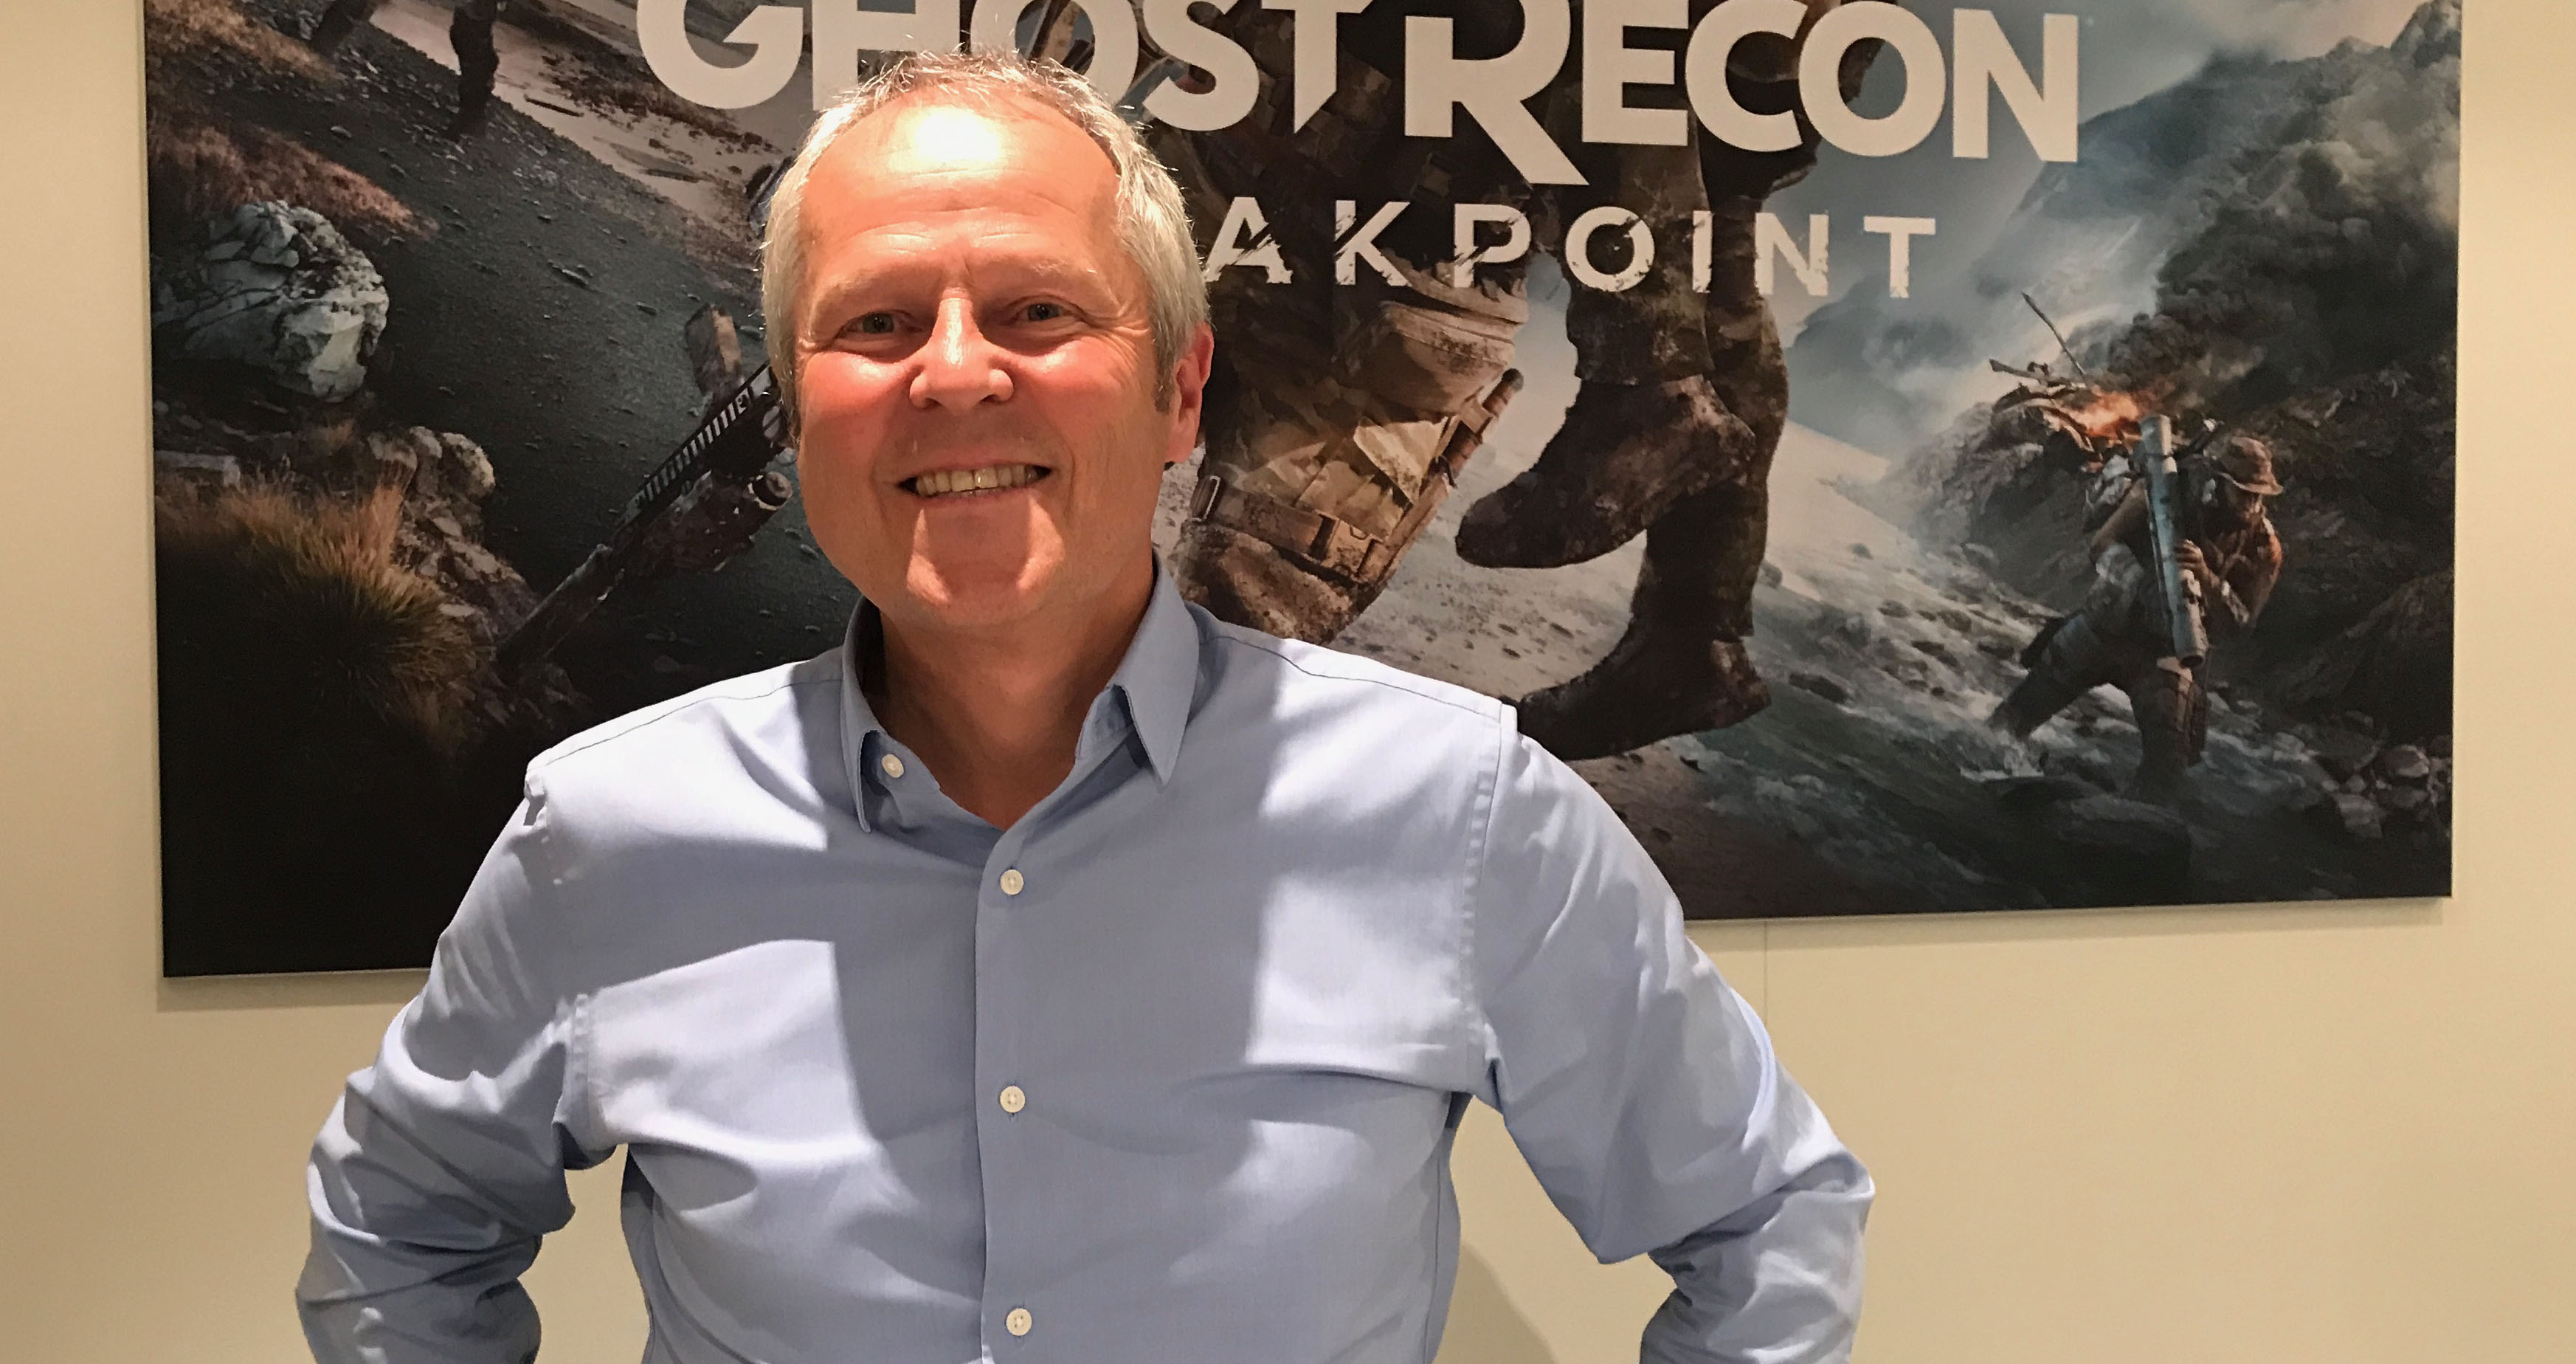 """Ubisoft group says Yves Guillemot has """"sidelined"""" its demands as CEO responds to open letter"""